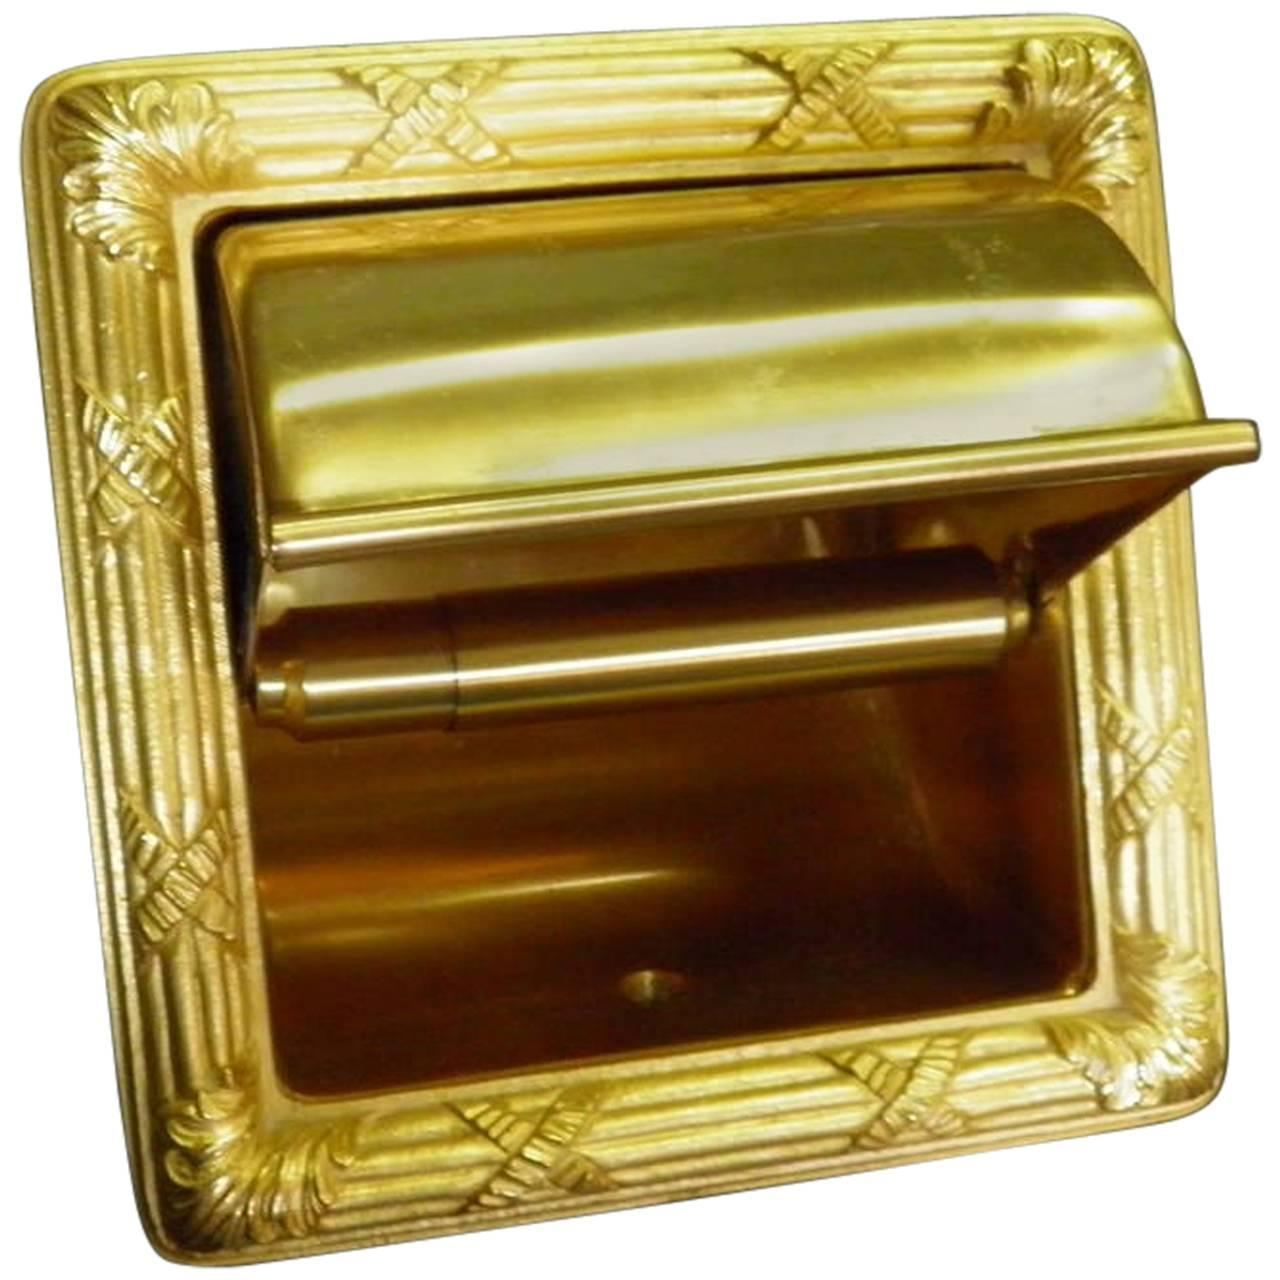 Gold Plated Toilet For Sale